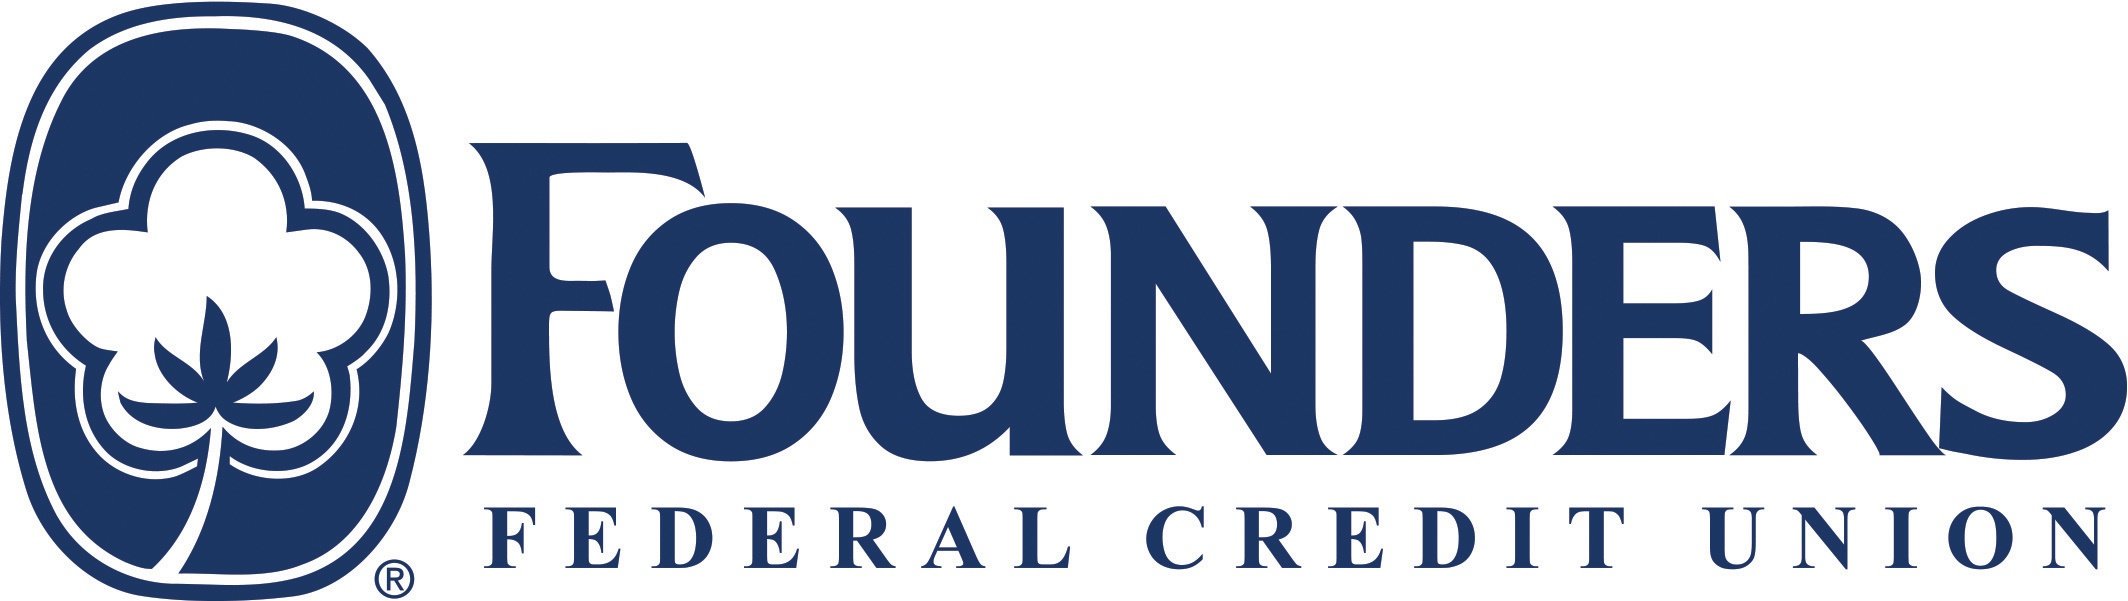 Founders-Federal-Credit-Union